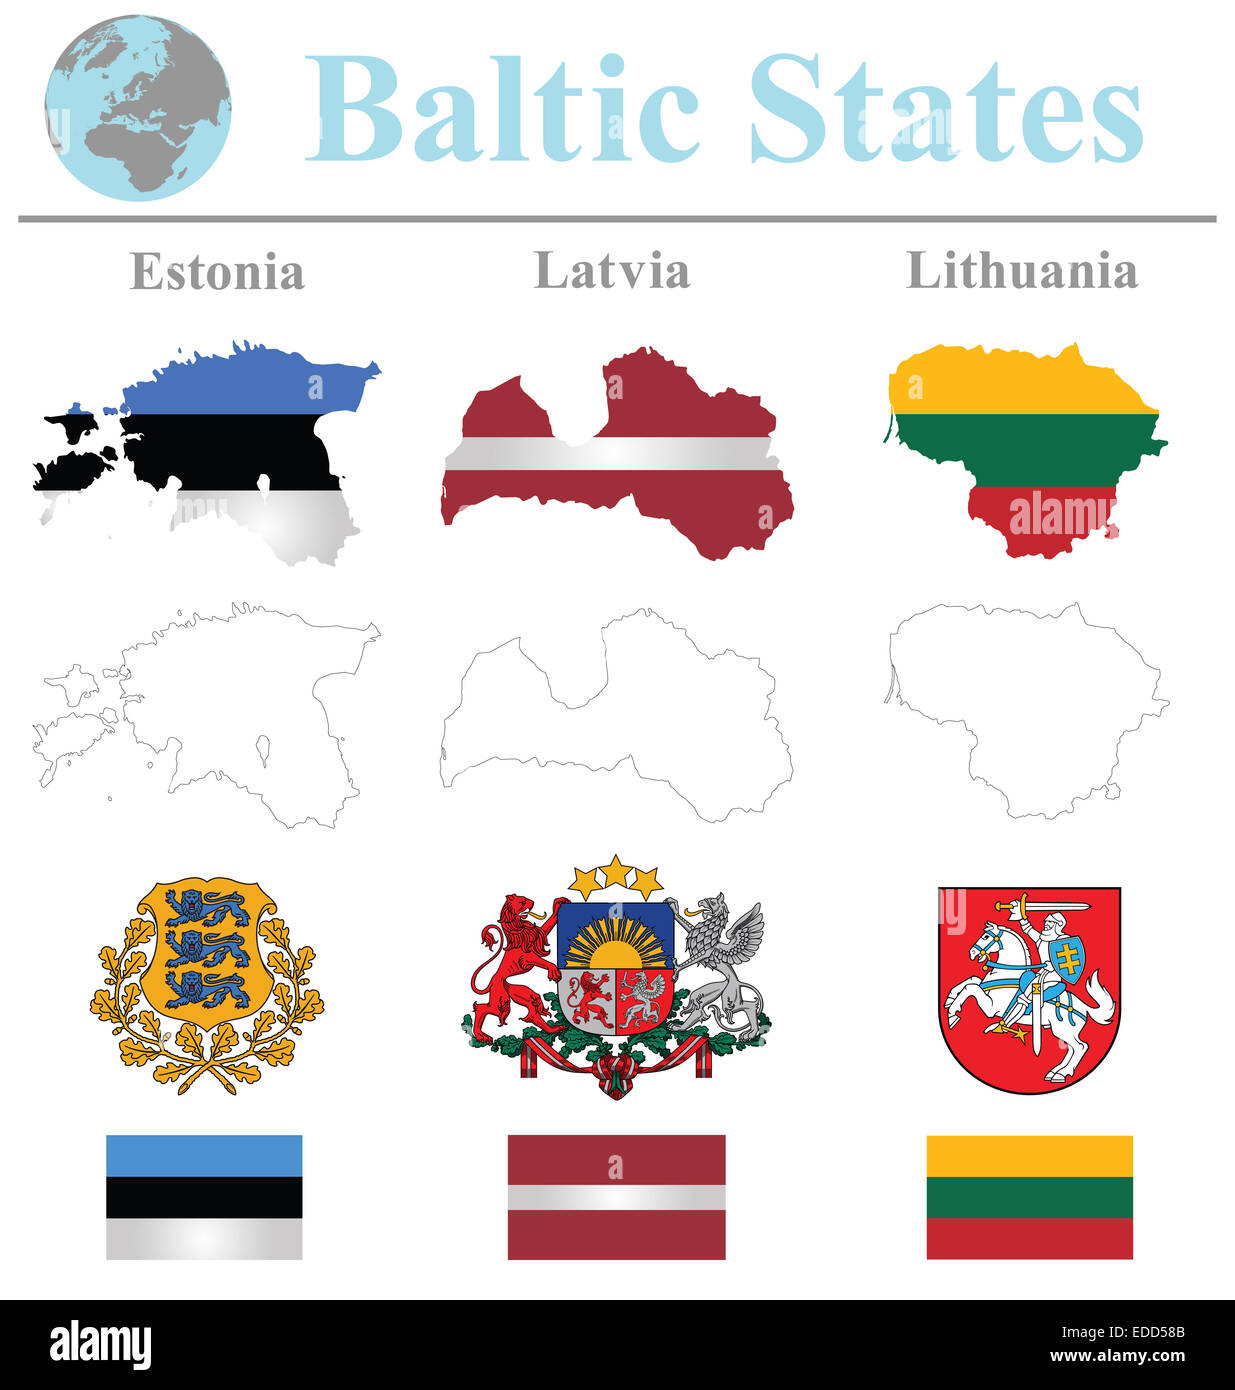 Flags of the Baltic States collection overlaid on outline map isolated on white background Stock Photo